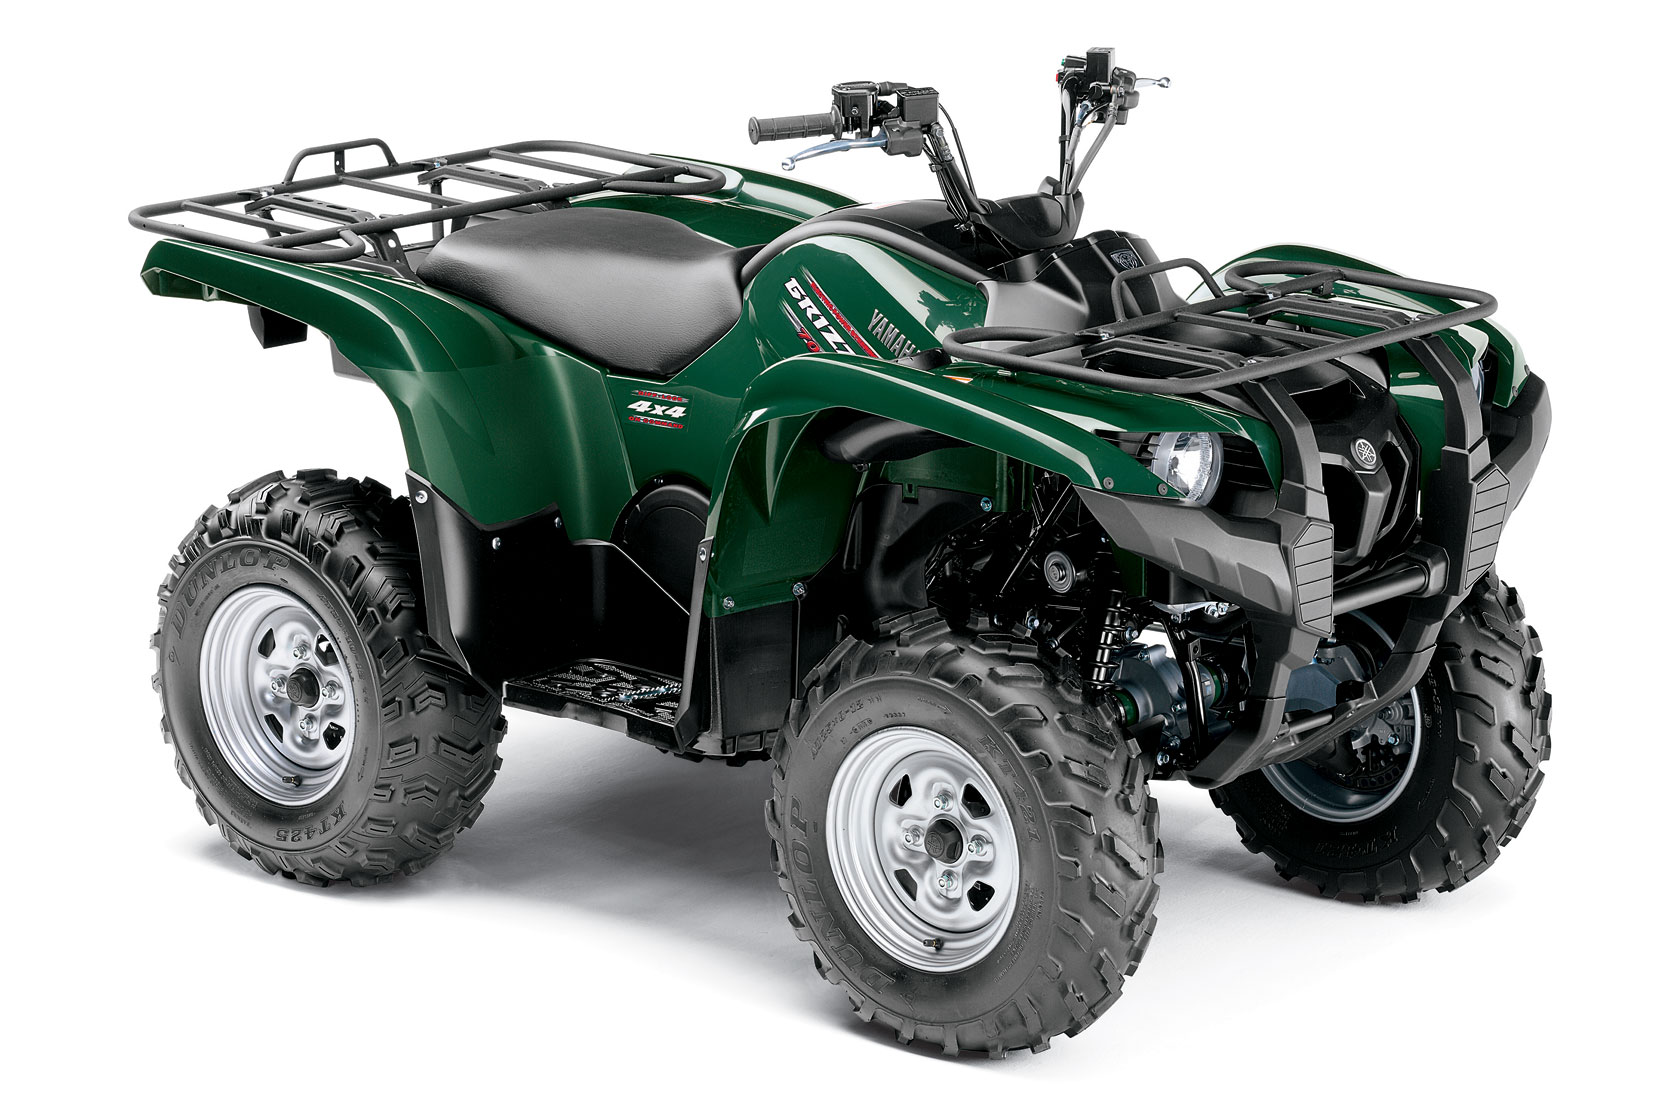 Yamaha grizzly 700 fi 4x4 eps specs 2009 2010 for Yamaha grizzly 4x4